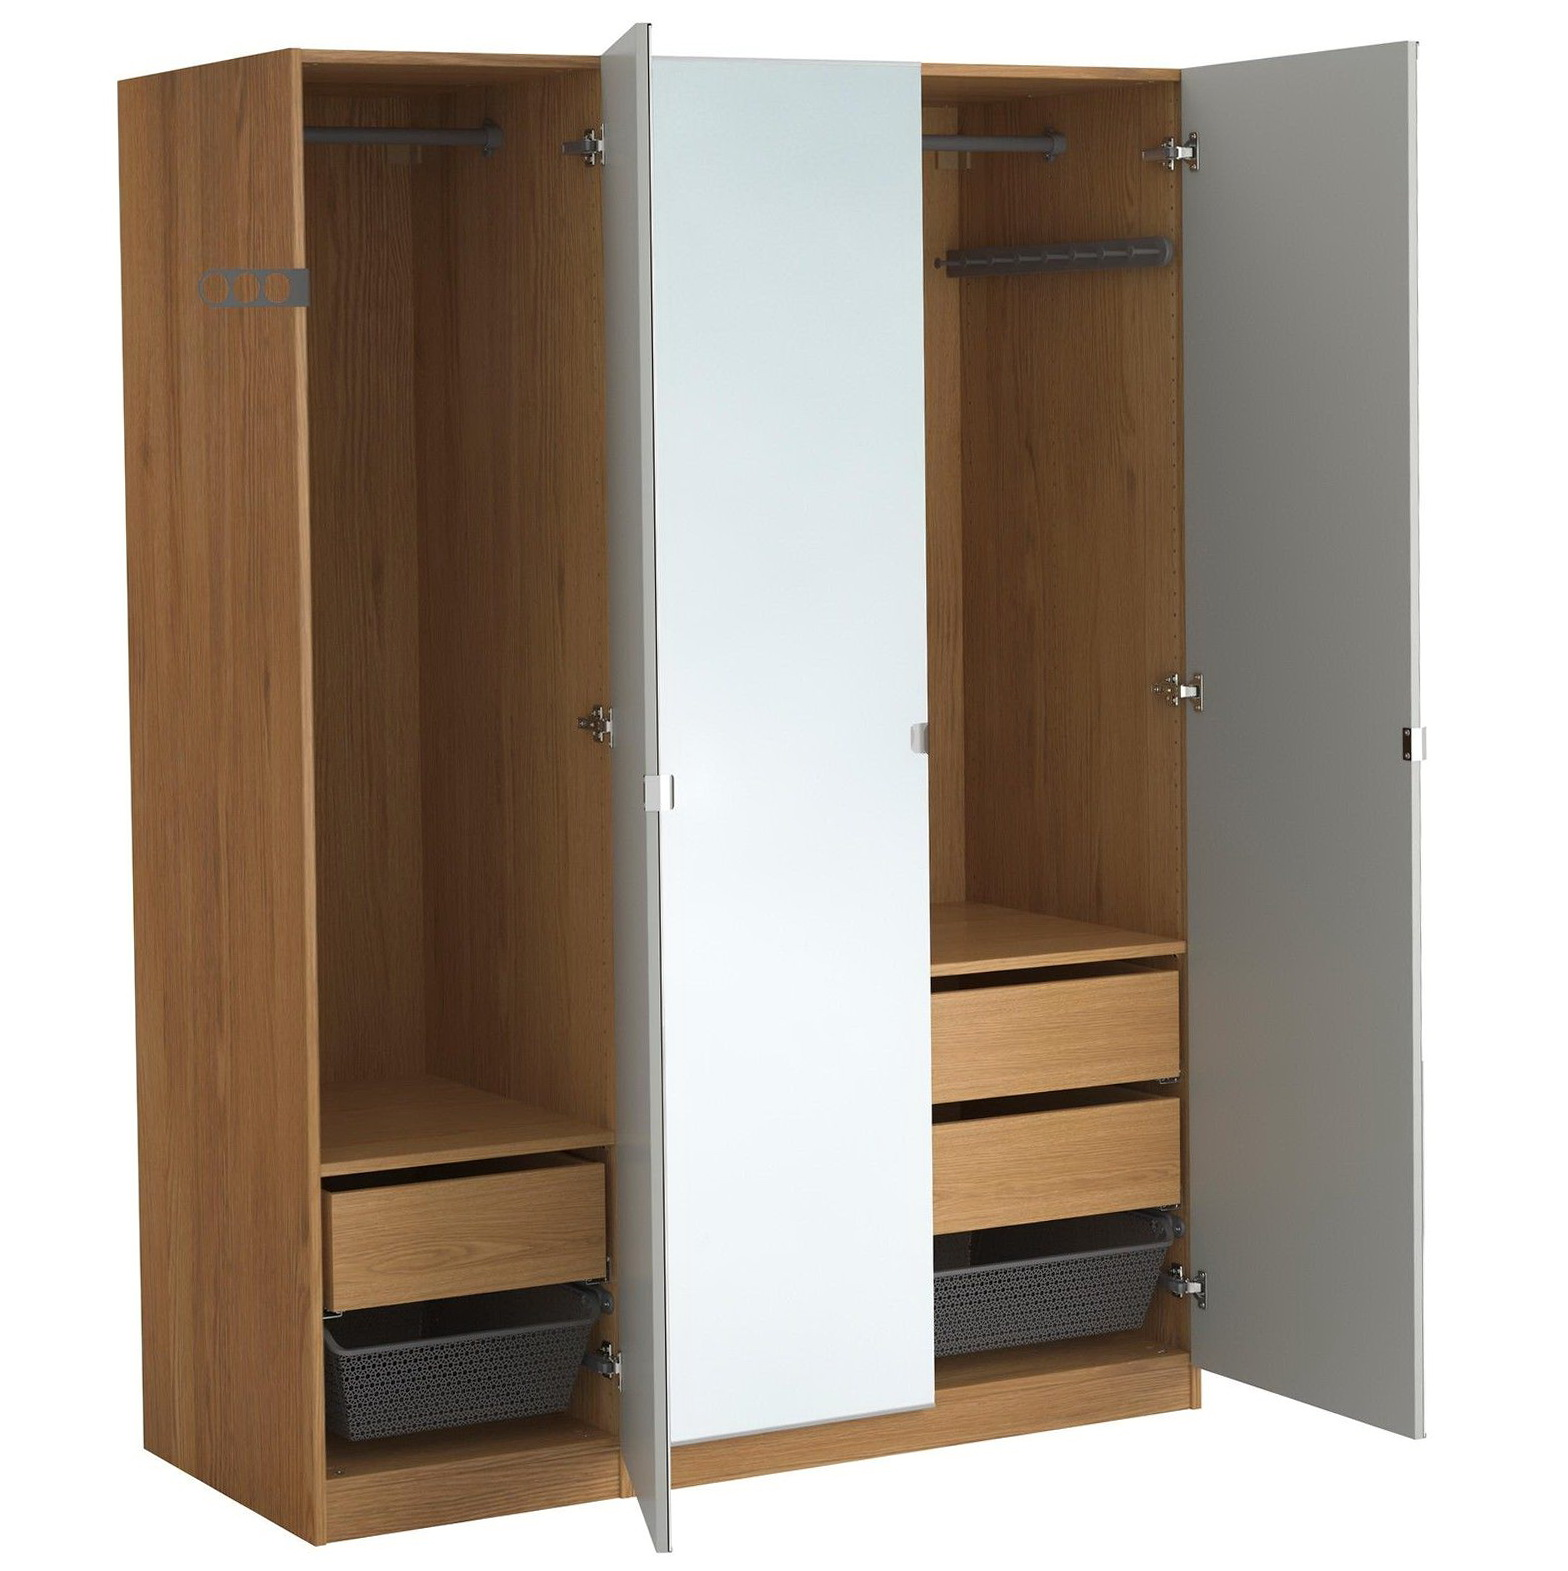 Mirrored wardrobe closet ikea home design ideas - Ikea armoire with mirror ...